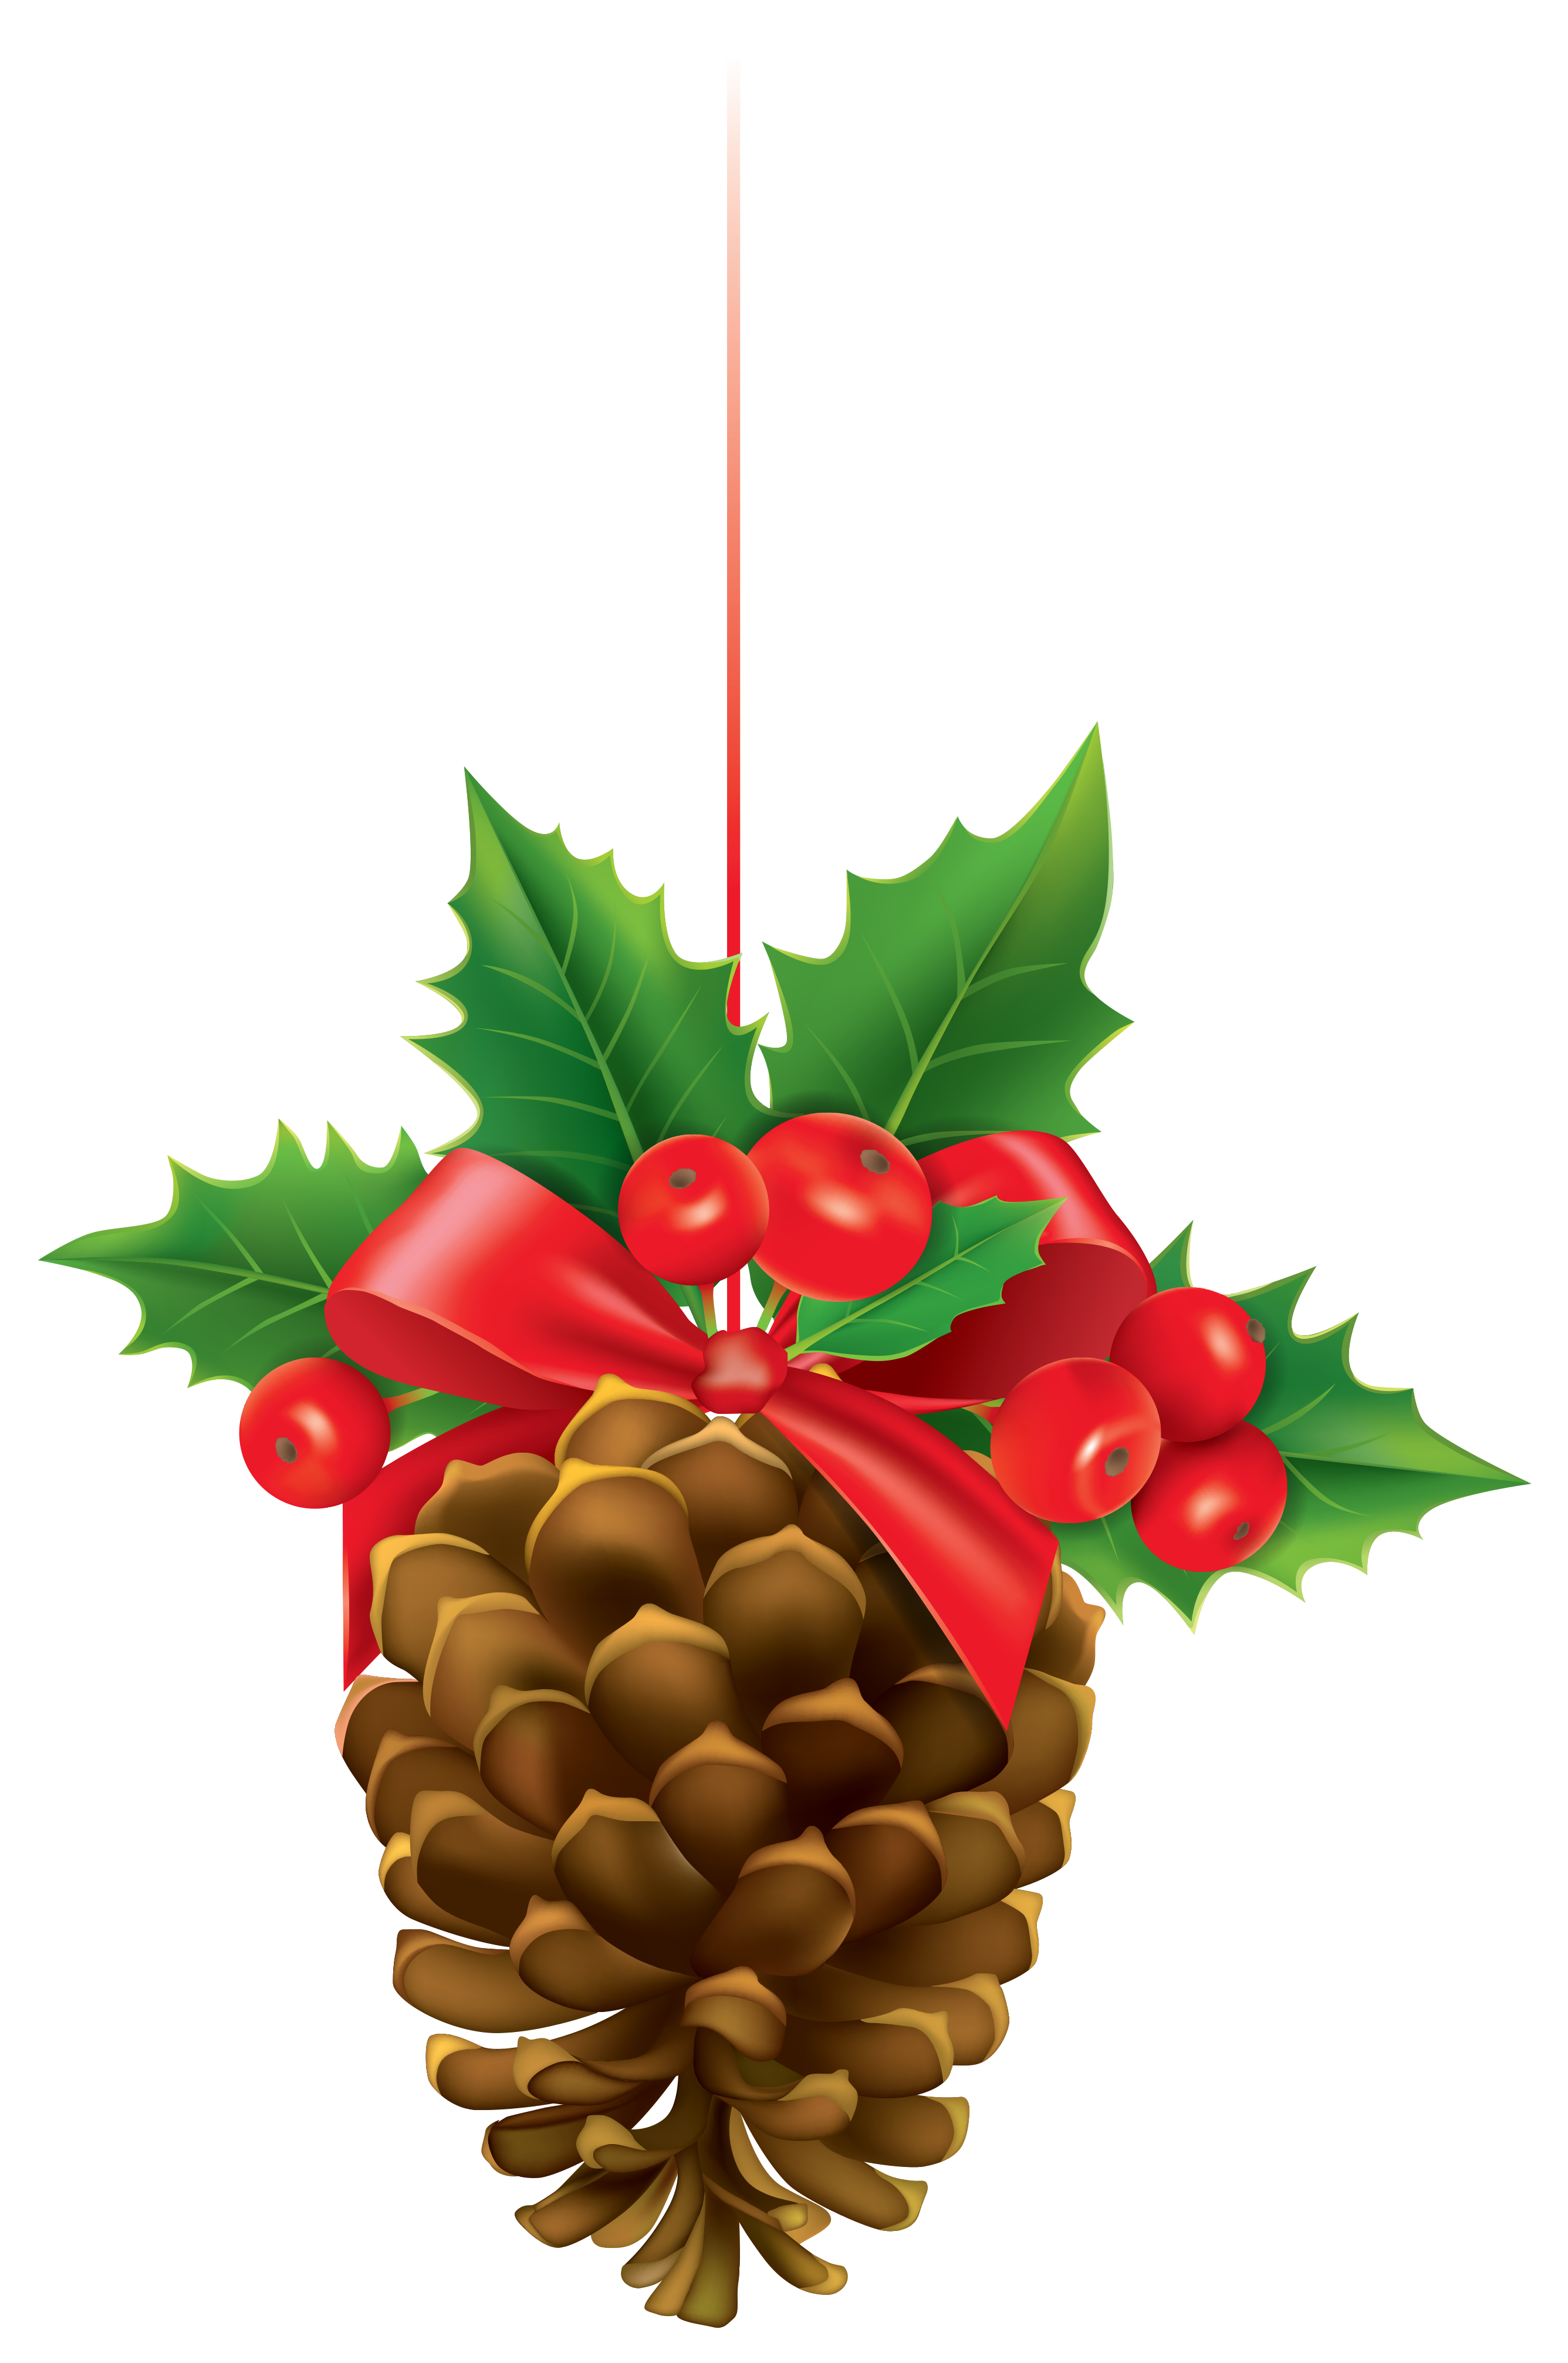 2672x4026 Christmas Pinecone With Mistletoe Png Clipart Imageu200b Gallery